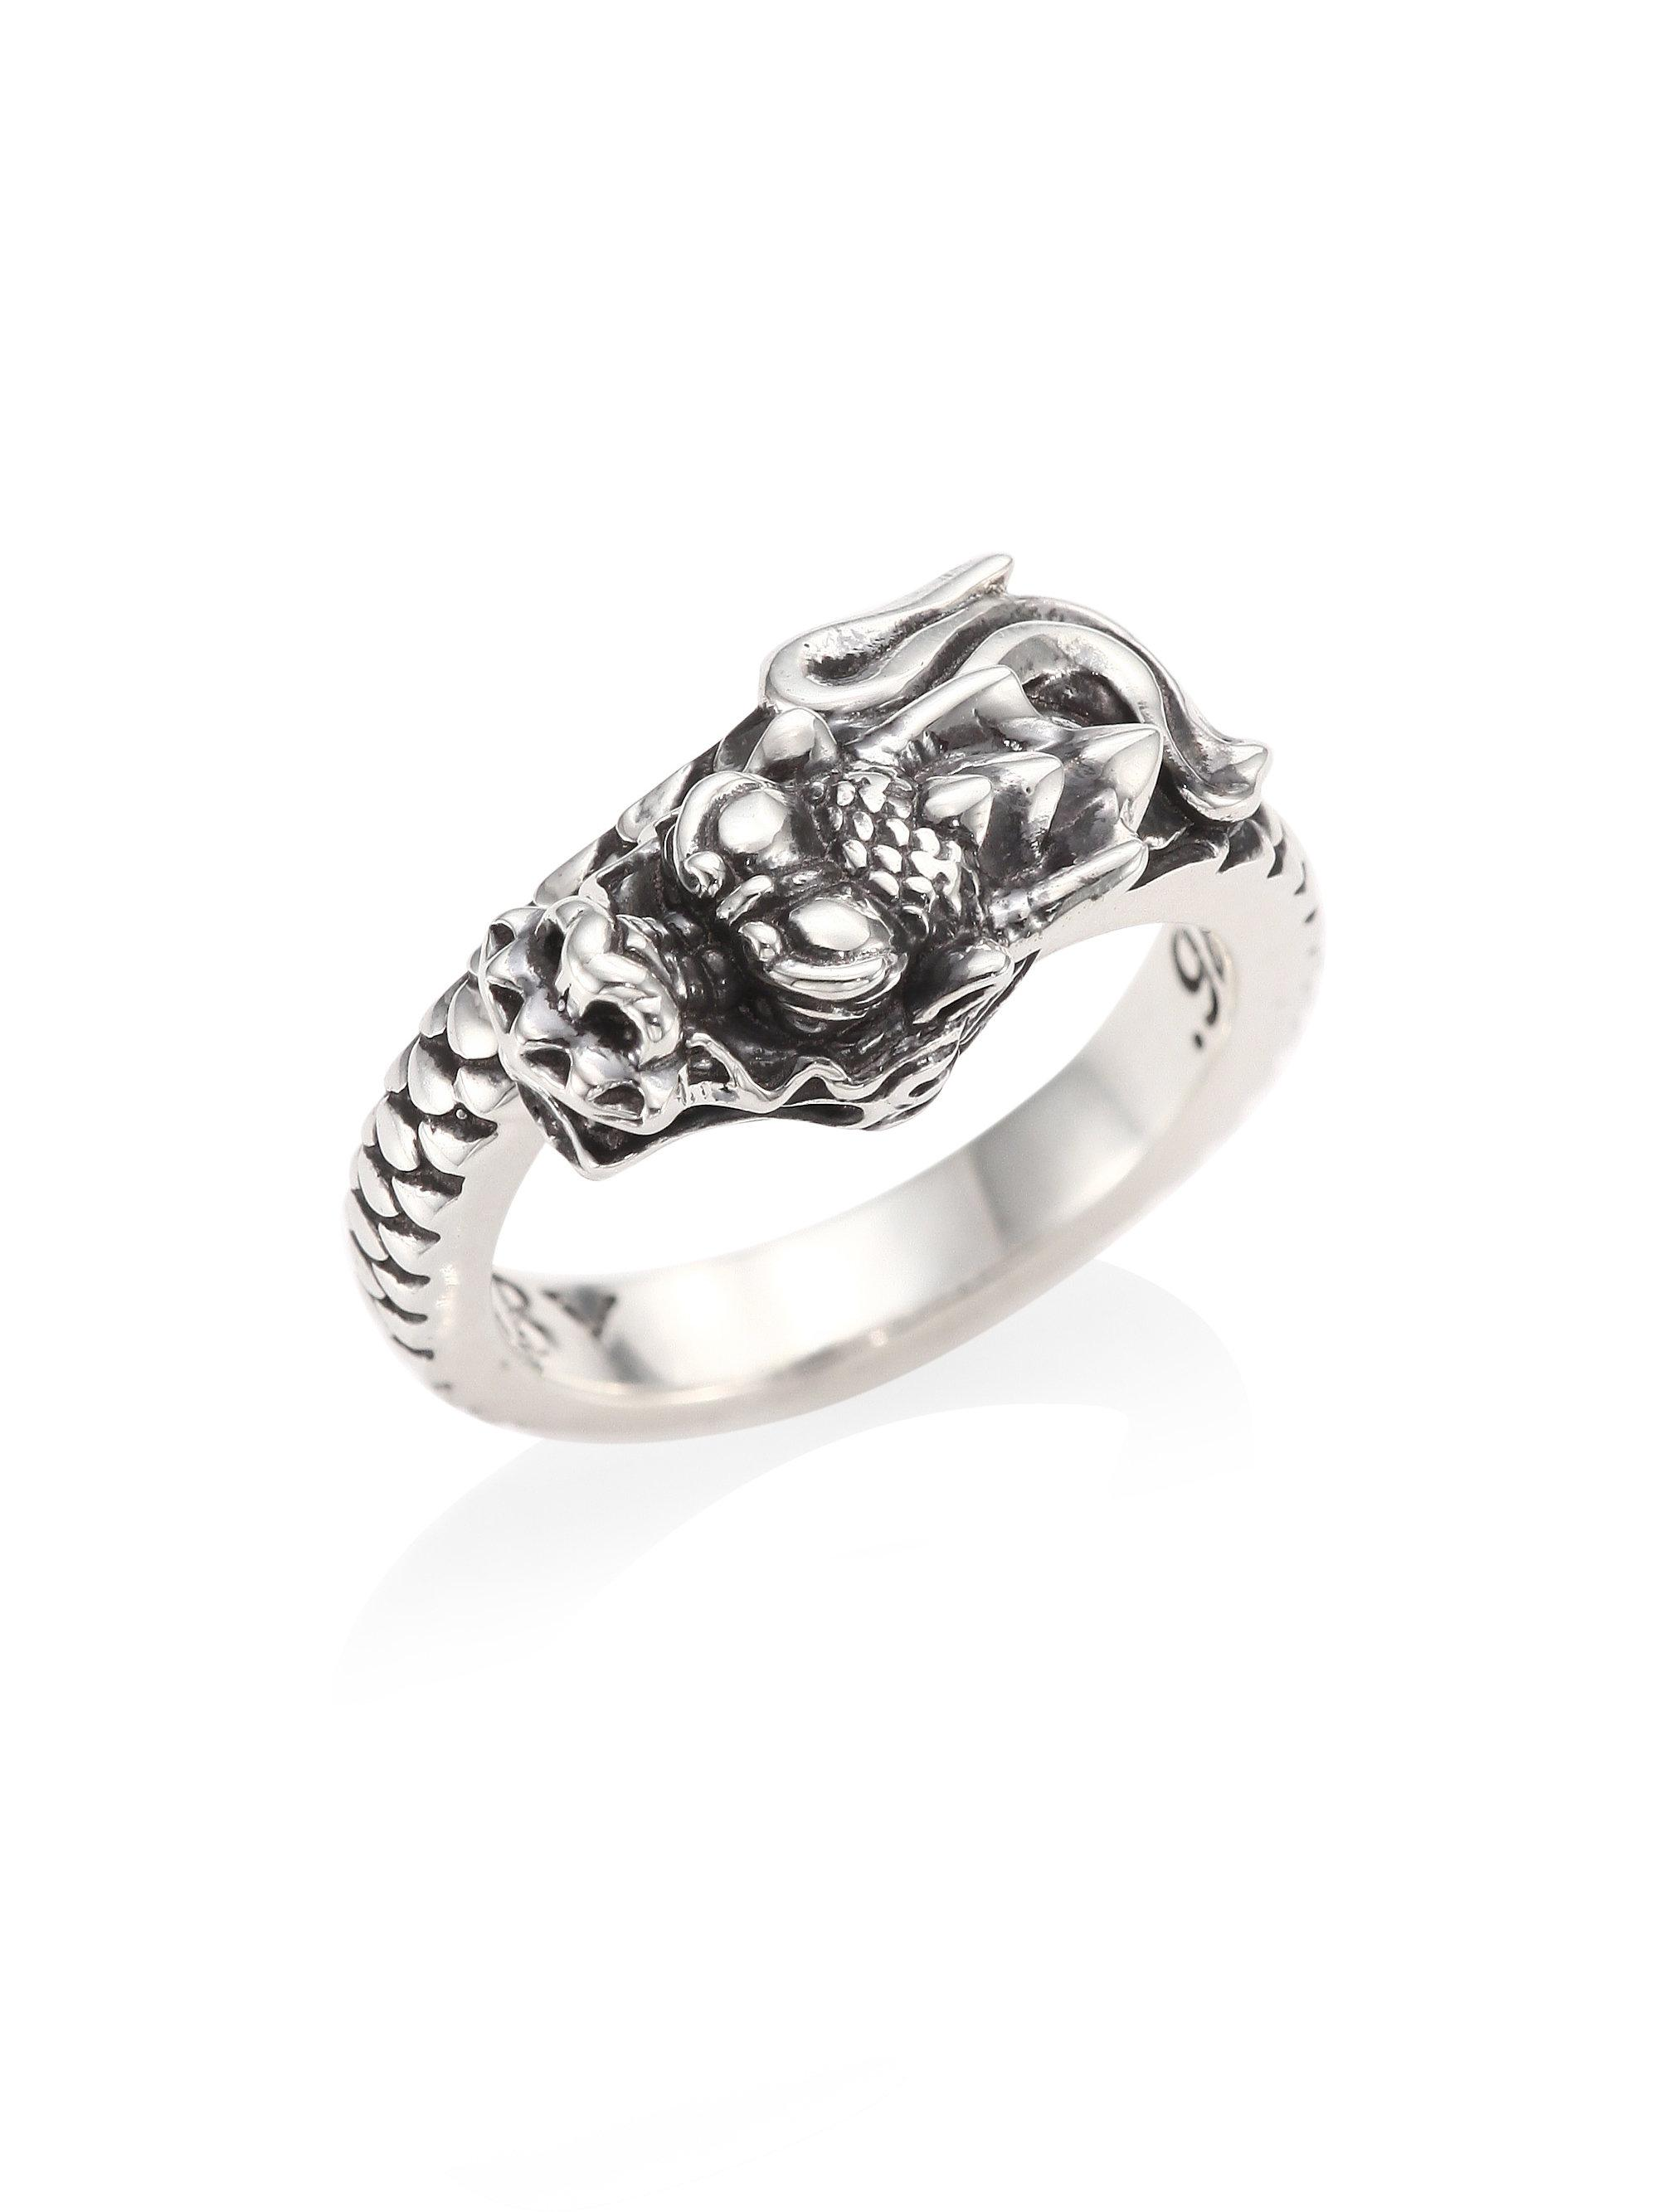 Lyst King baby studio Sterling Silver Dragon Coil Ring in Metallic